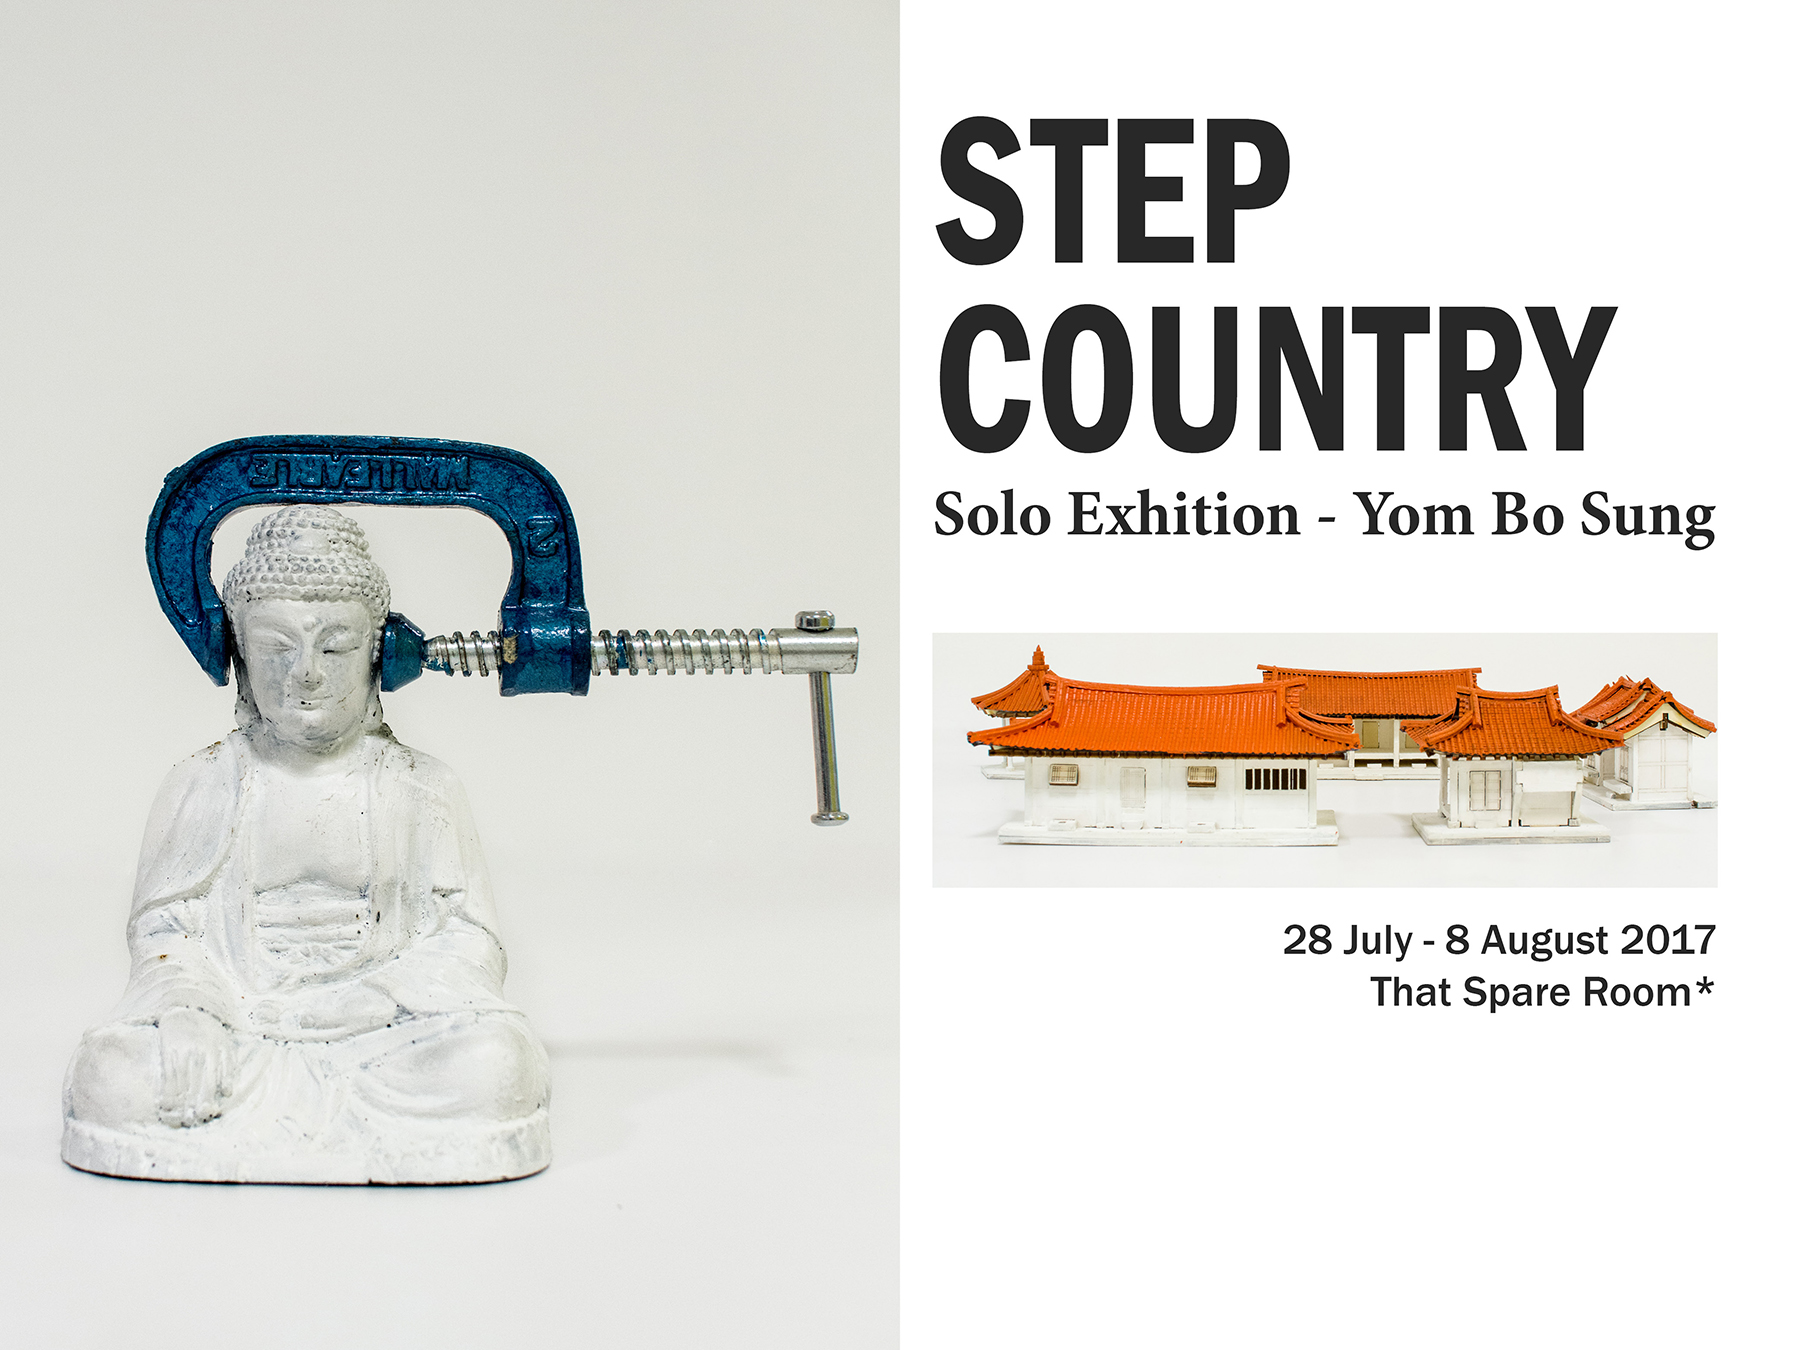 Stepcountry(artitute)